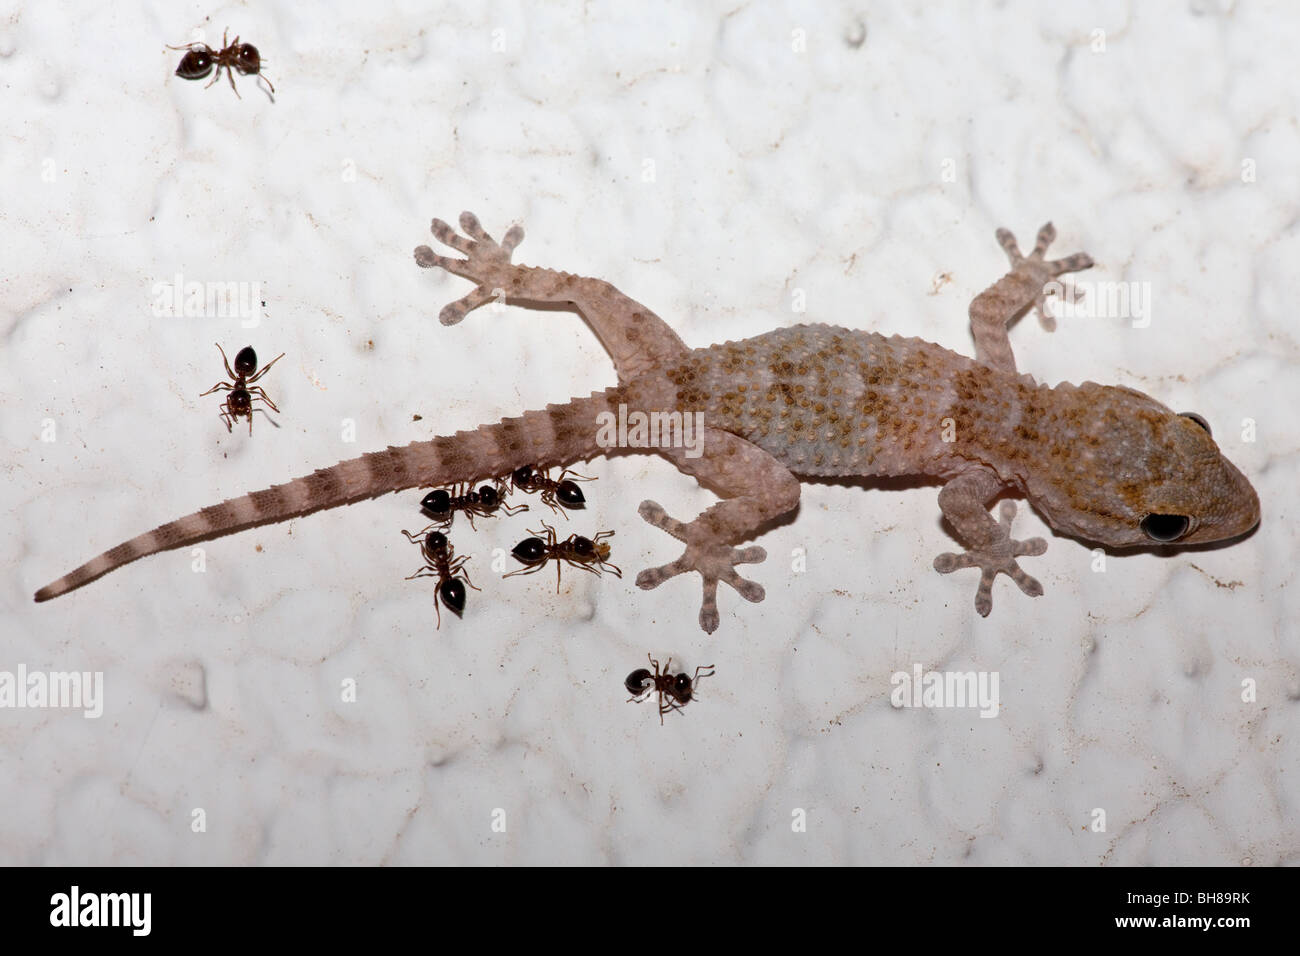 Moorish wall gecko stockfotos moorish wall gecko bilder - Ameisen in der wand ...